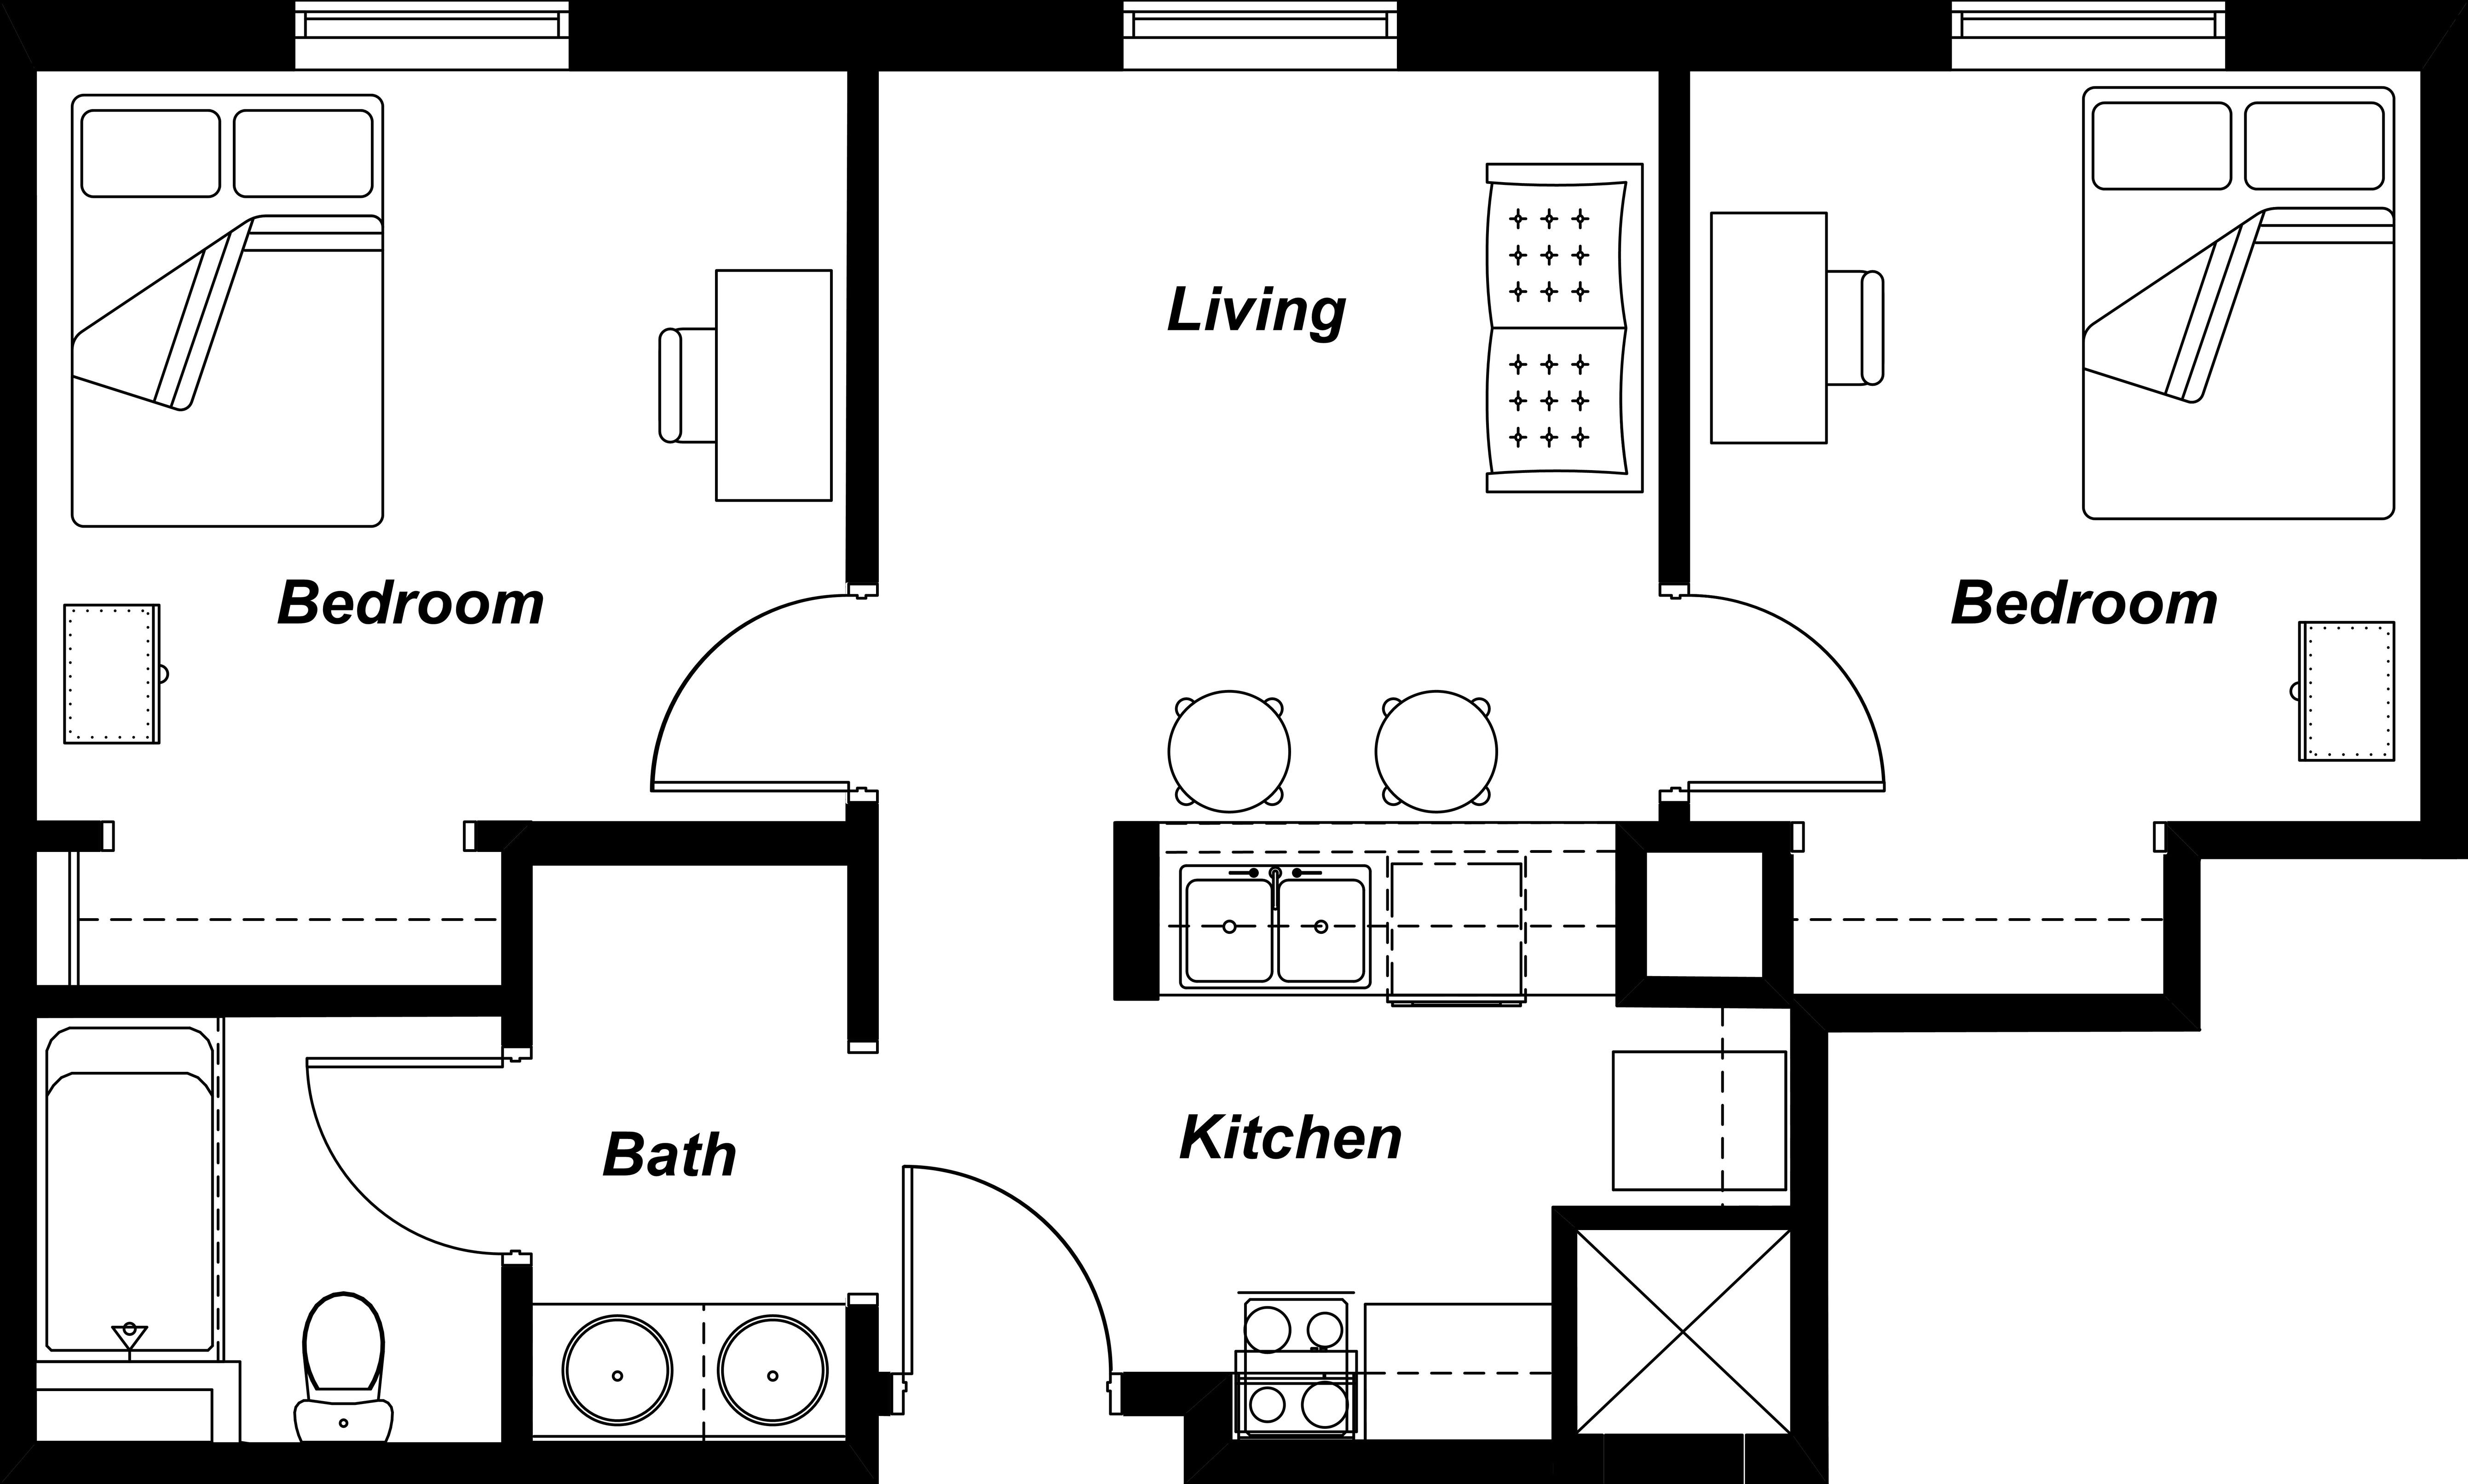 Calhoun Lofts Floor Plan Design Home Design Floor Plans Affordable Floor Plans